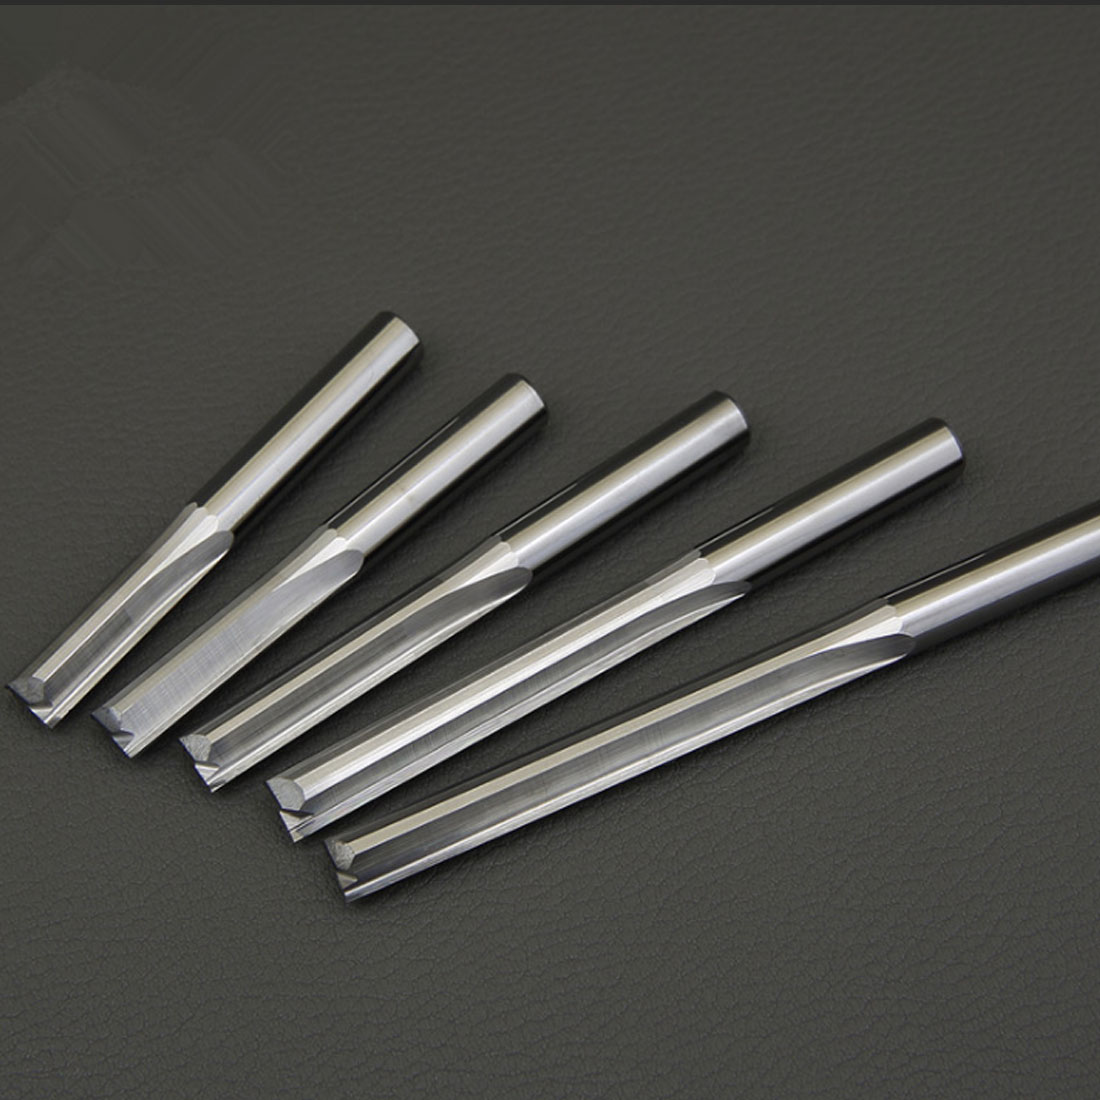 6mm/4mm Milling Cutter Shank Two Flutes Straight Router Bits For Wood CNC Straight Engraving Cutters End Mill Tools